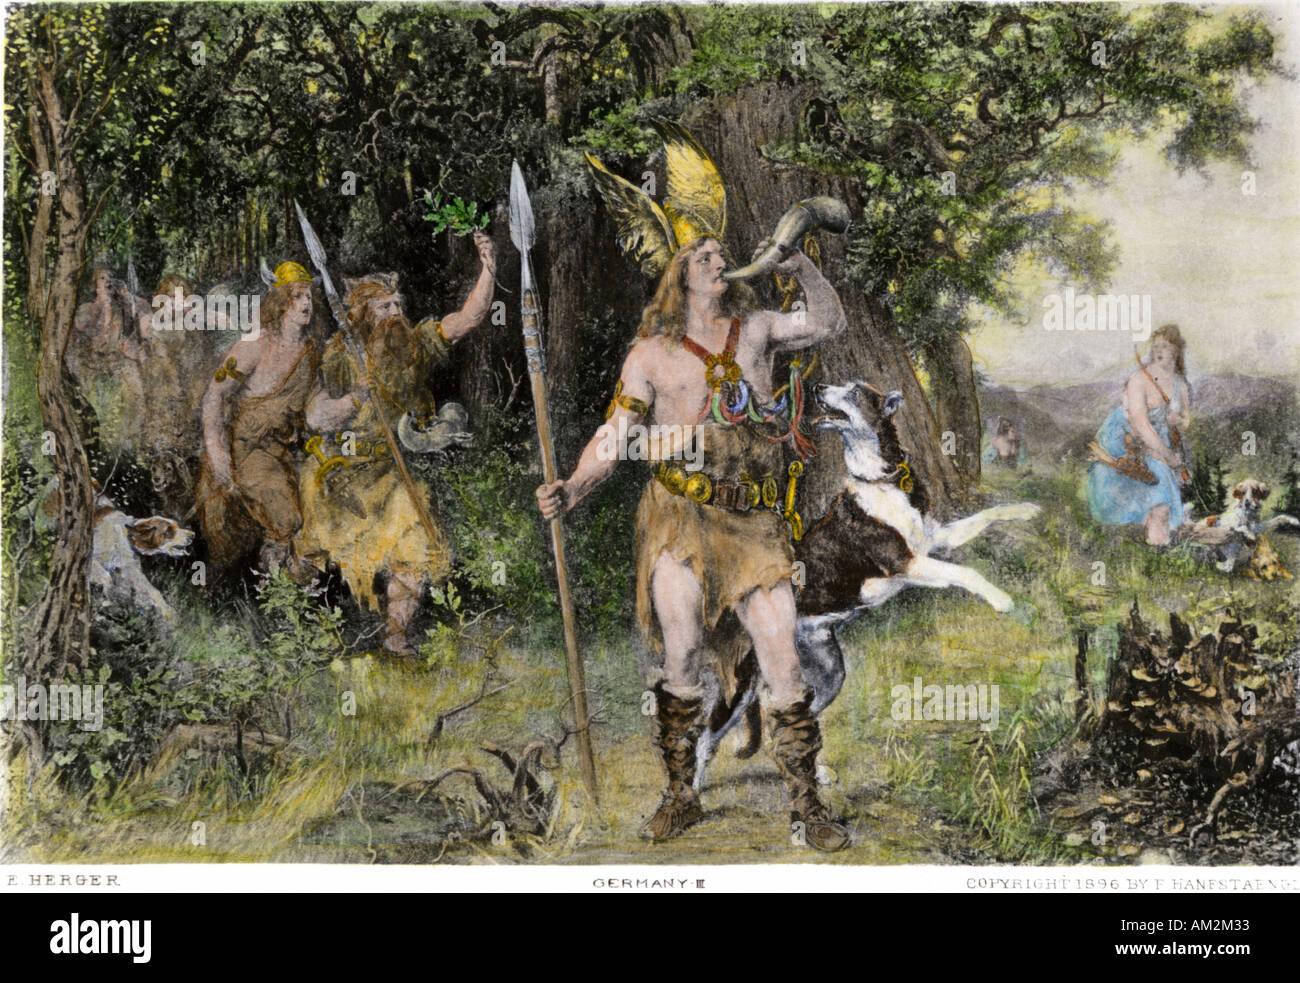 Germanic tribal leader Hermann blowing his horn to call the Cherusci to arms against the Romans - Stock Image